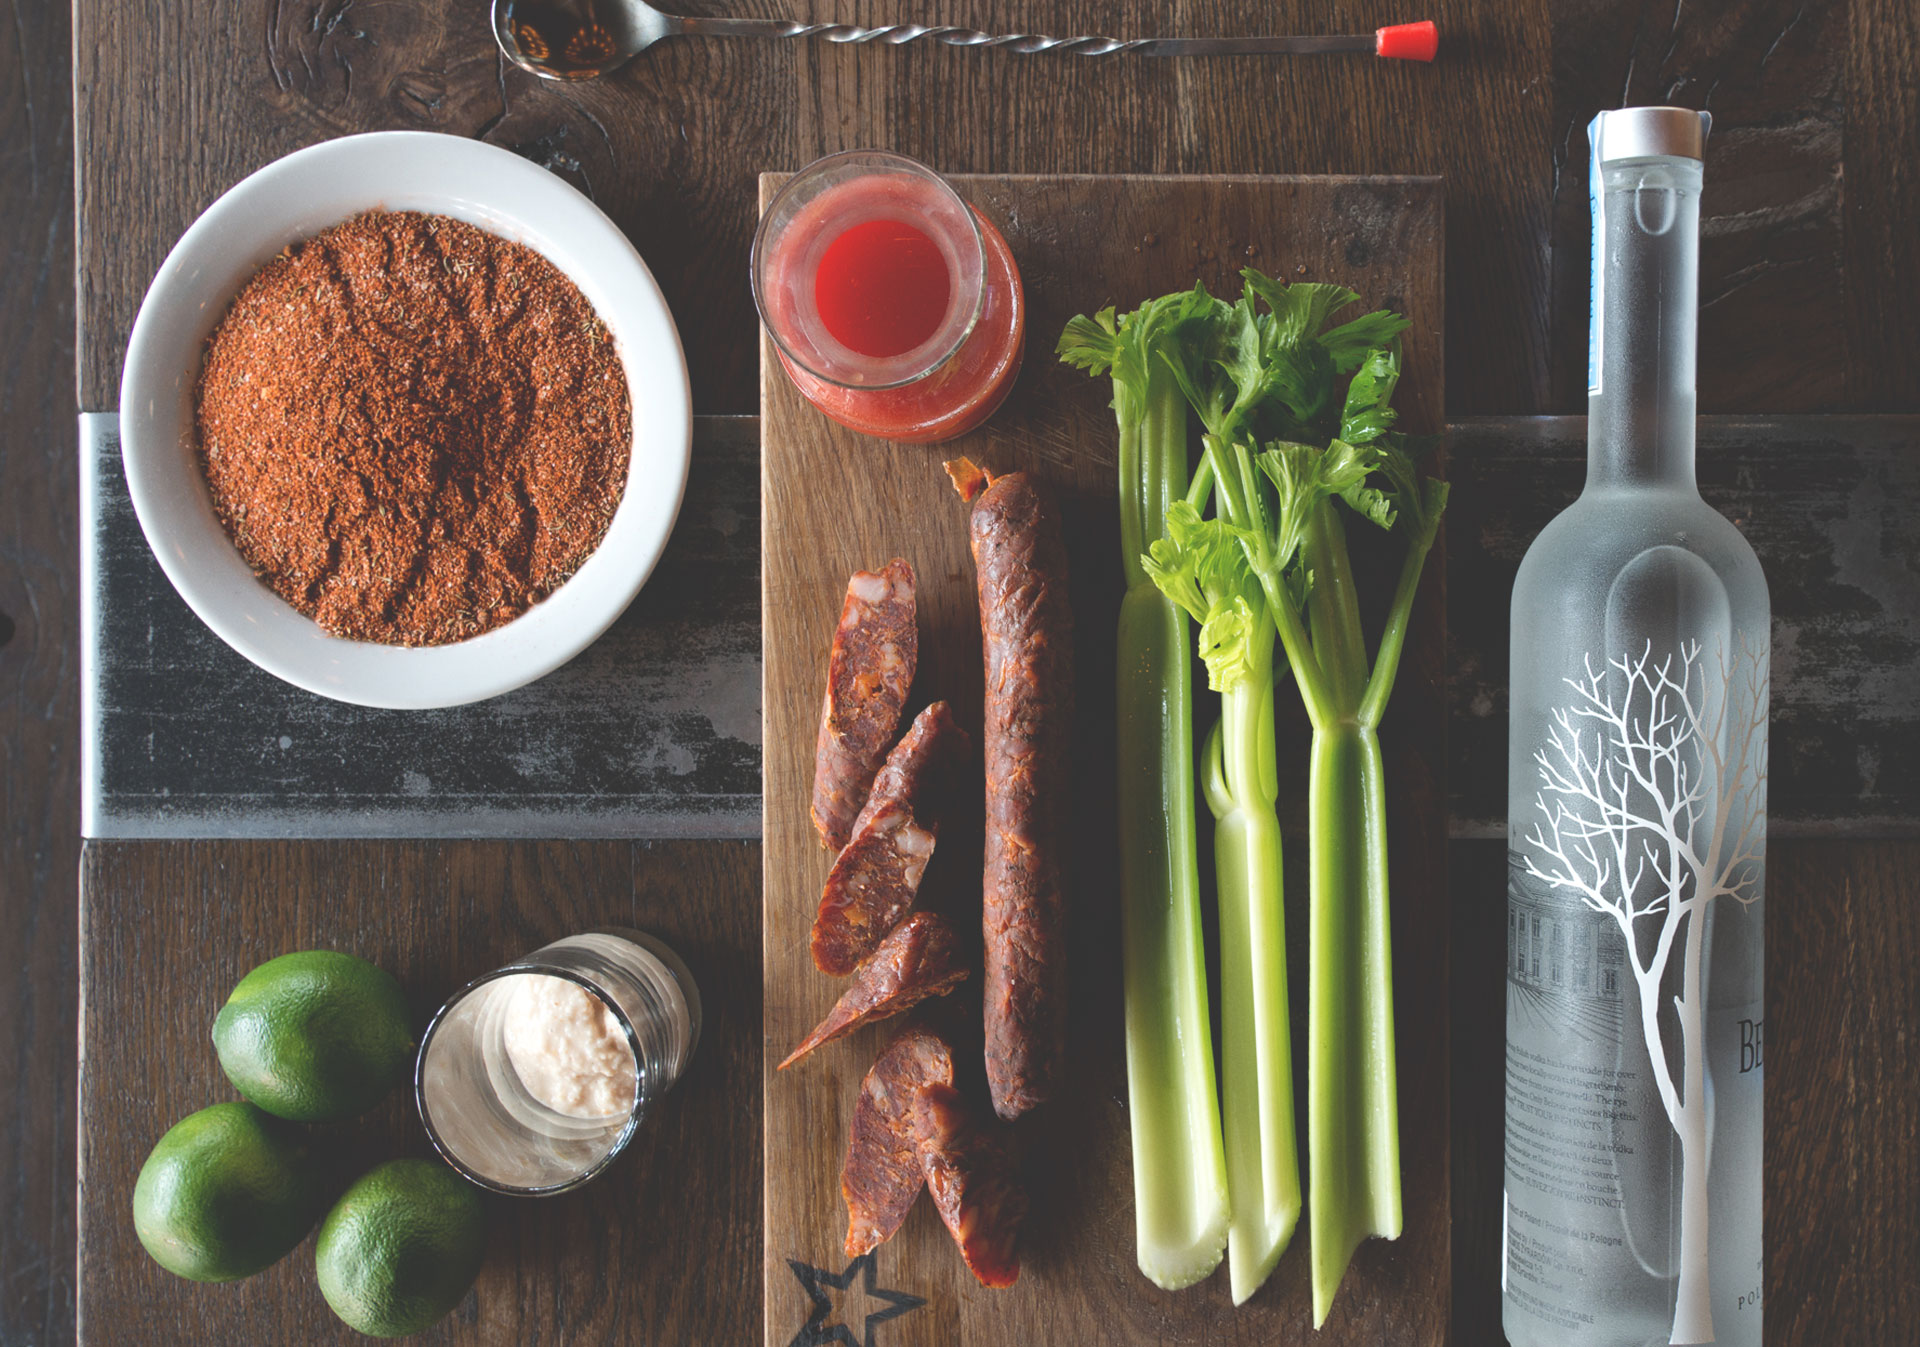 All the ingredients needed for a NTNL Caesar.